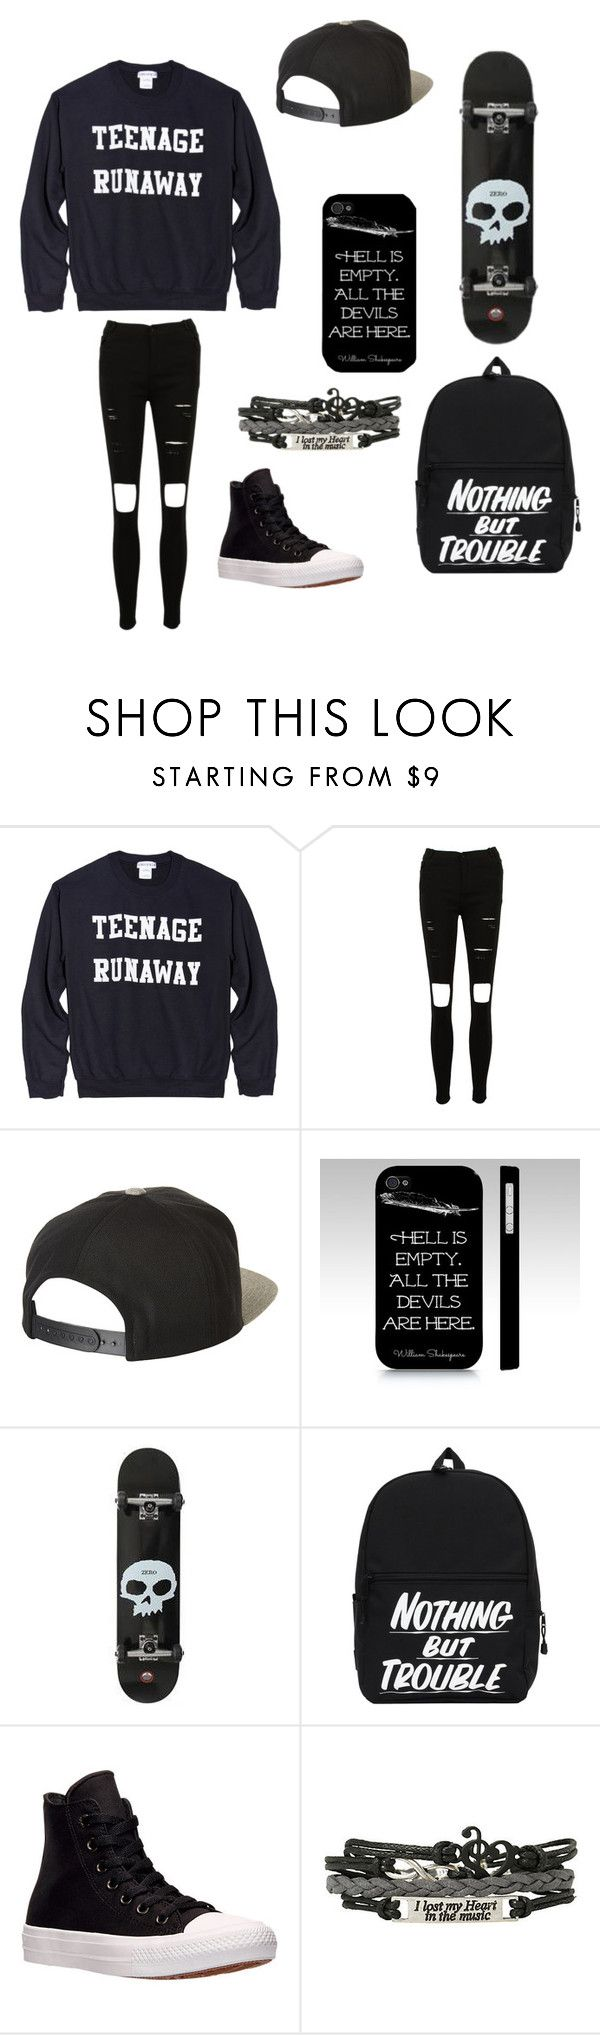 """Untitled #46"" by darksoul7 on Polyvore featuring Brixton, Samsung and Converse"